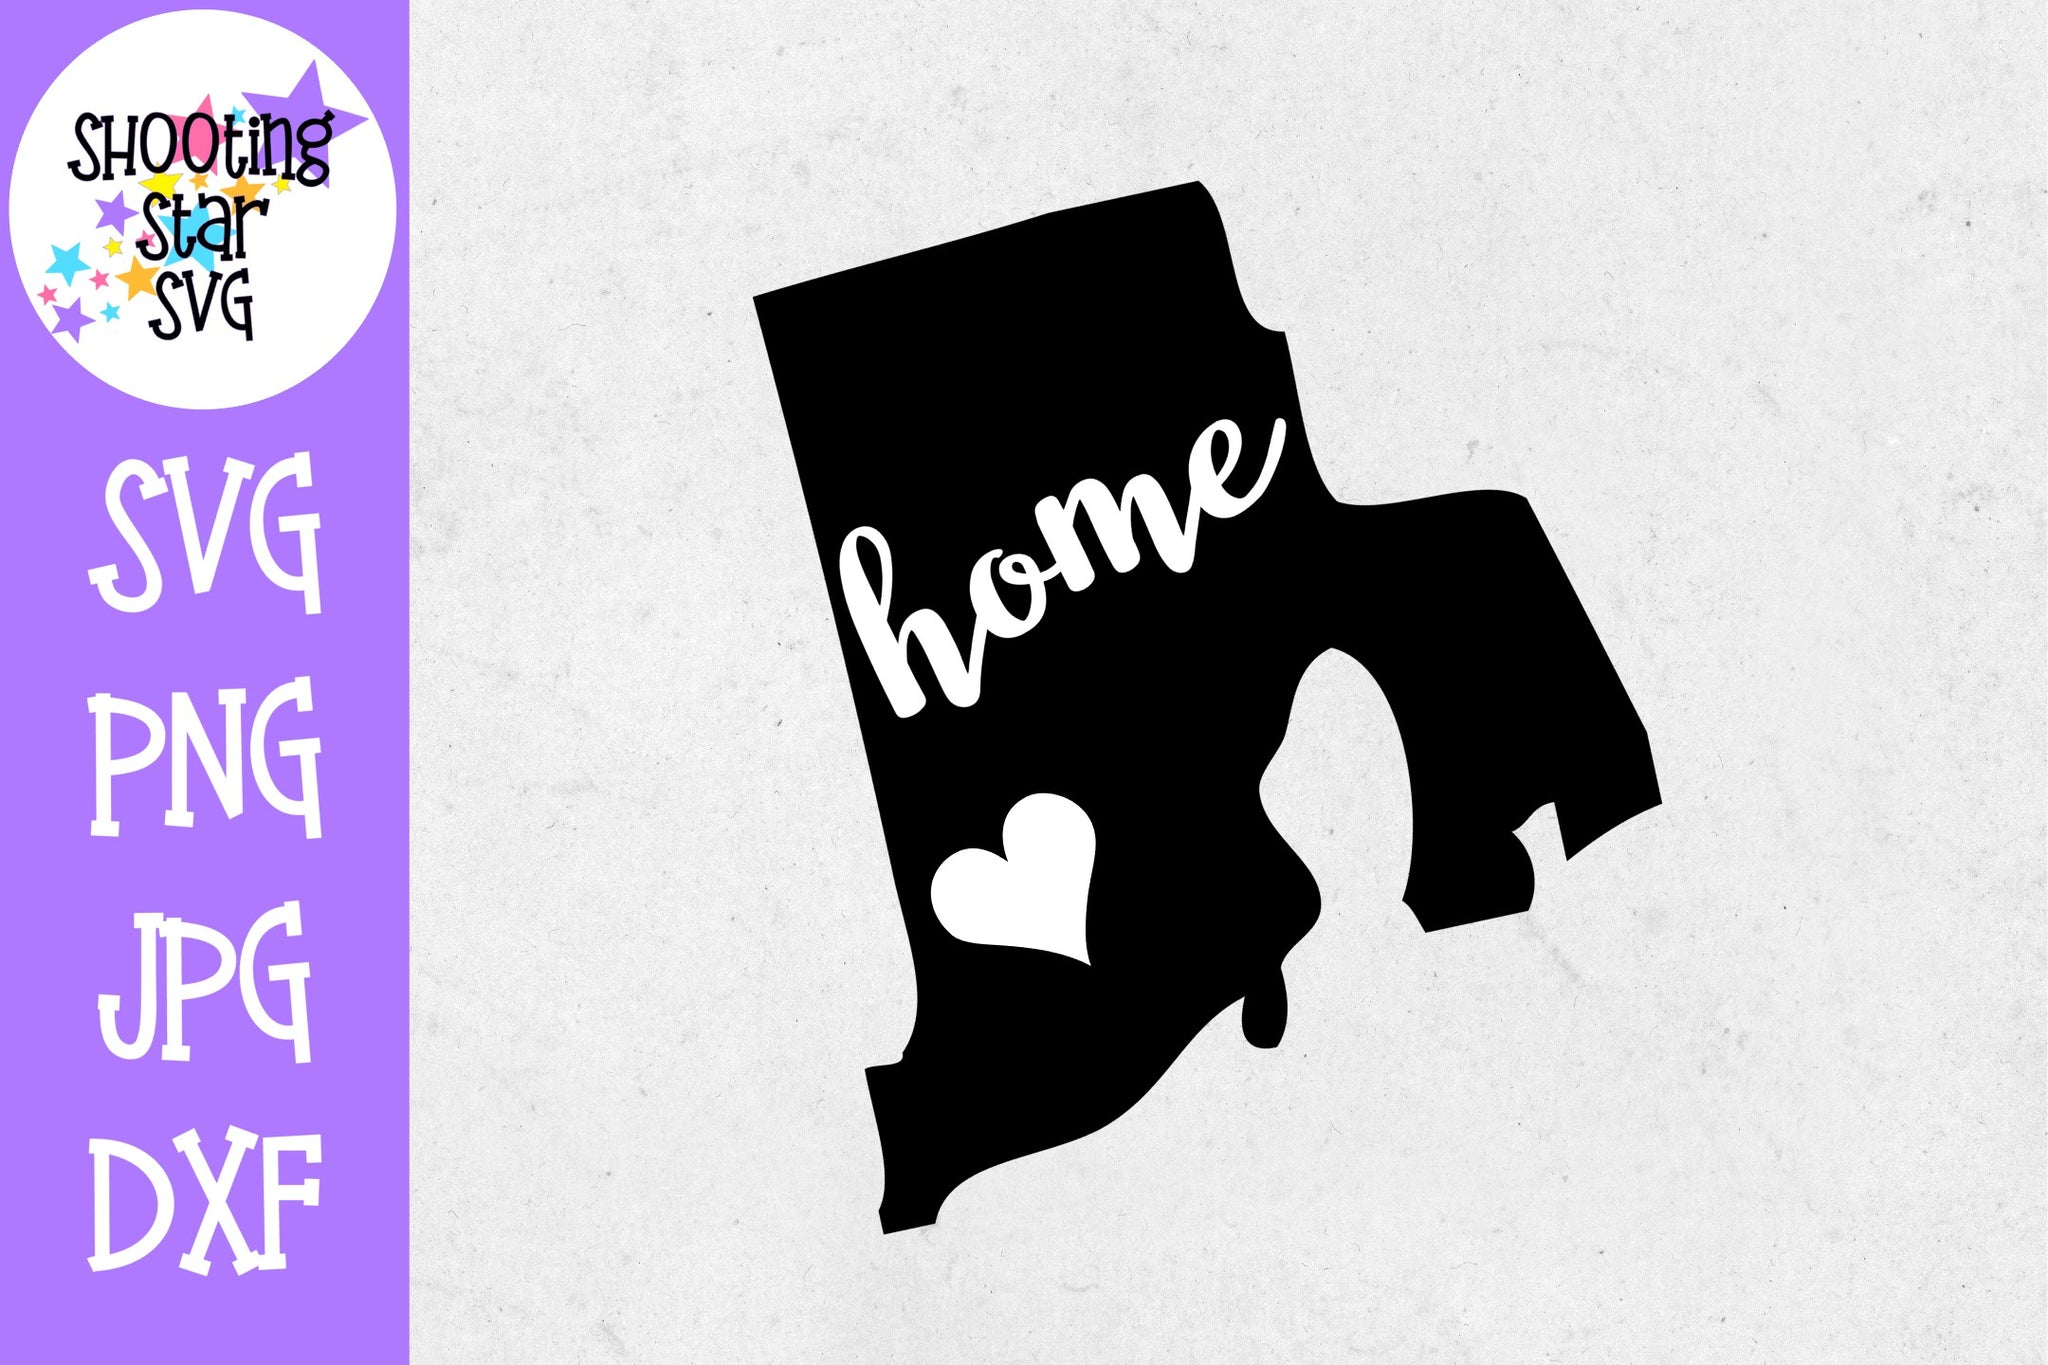 Rhode Island State Home with Heart SVG - 50 States SVG - United States SVG